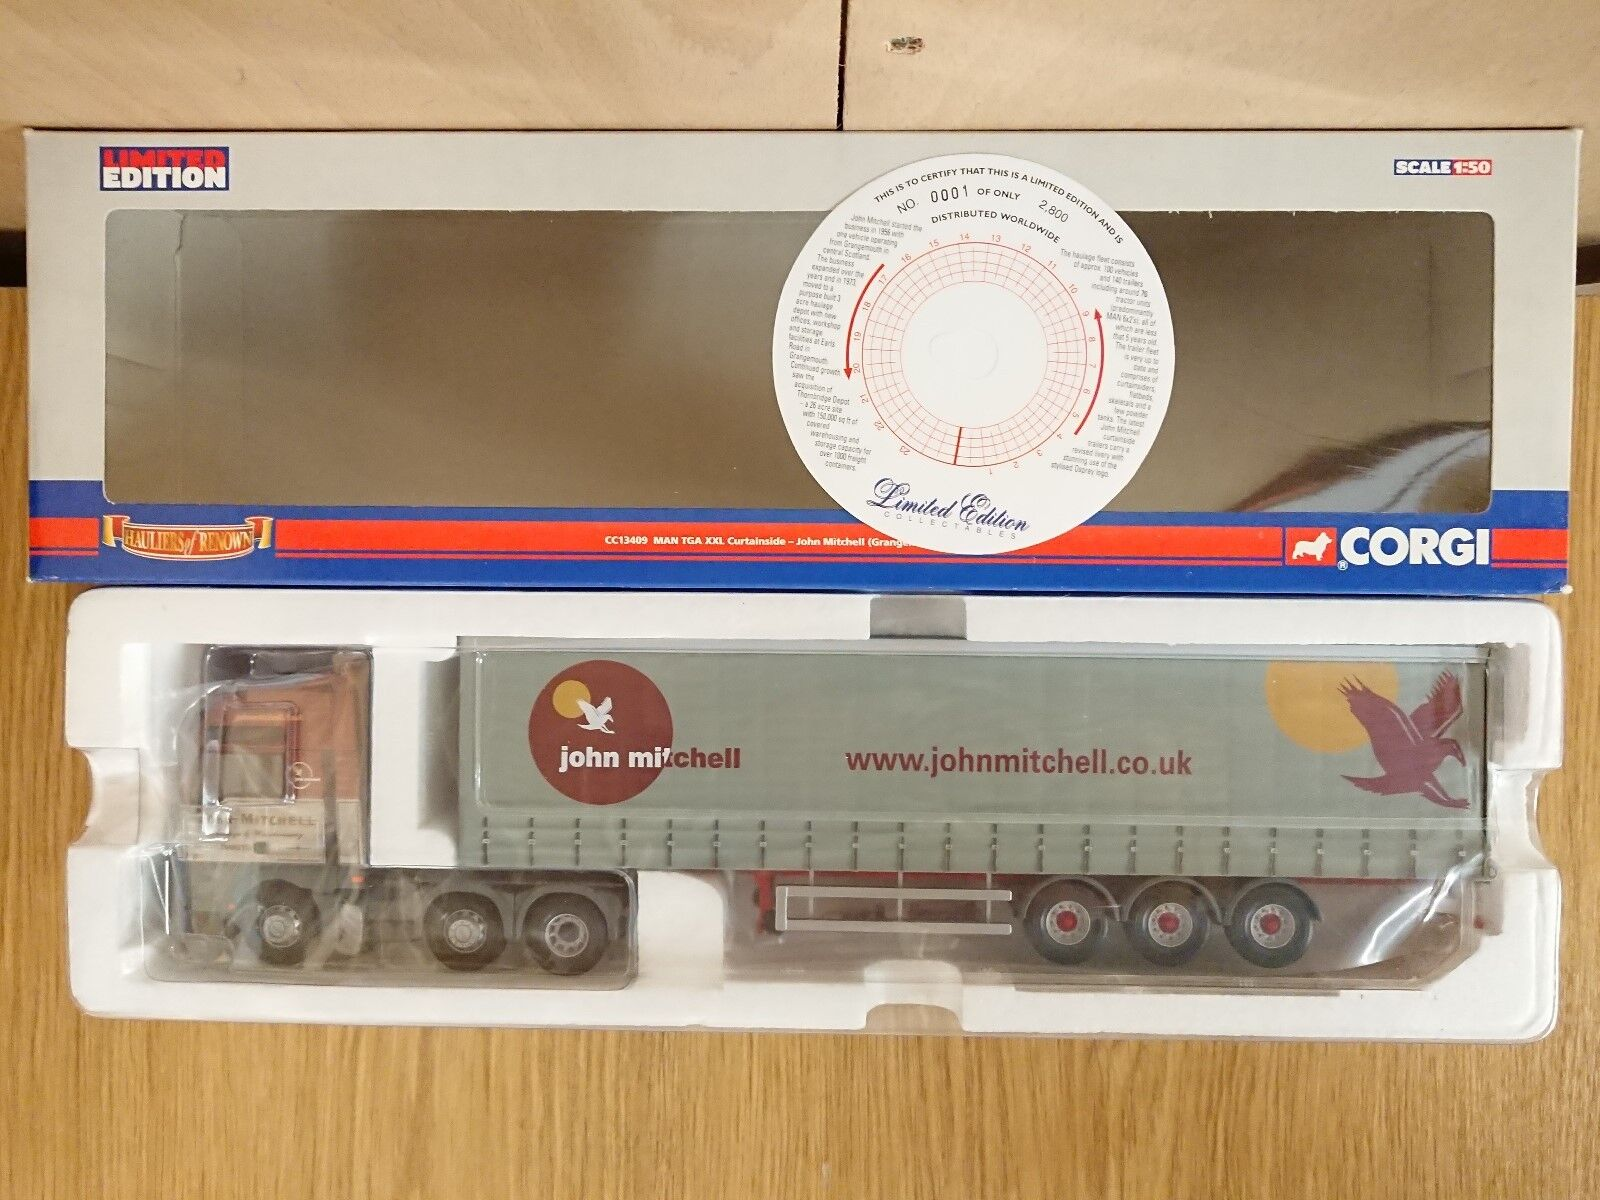 CORGI CC13409 MAN TGA XXL curtainside John Mitchell LTD ED. No 0001 de 2800